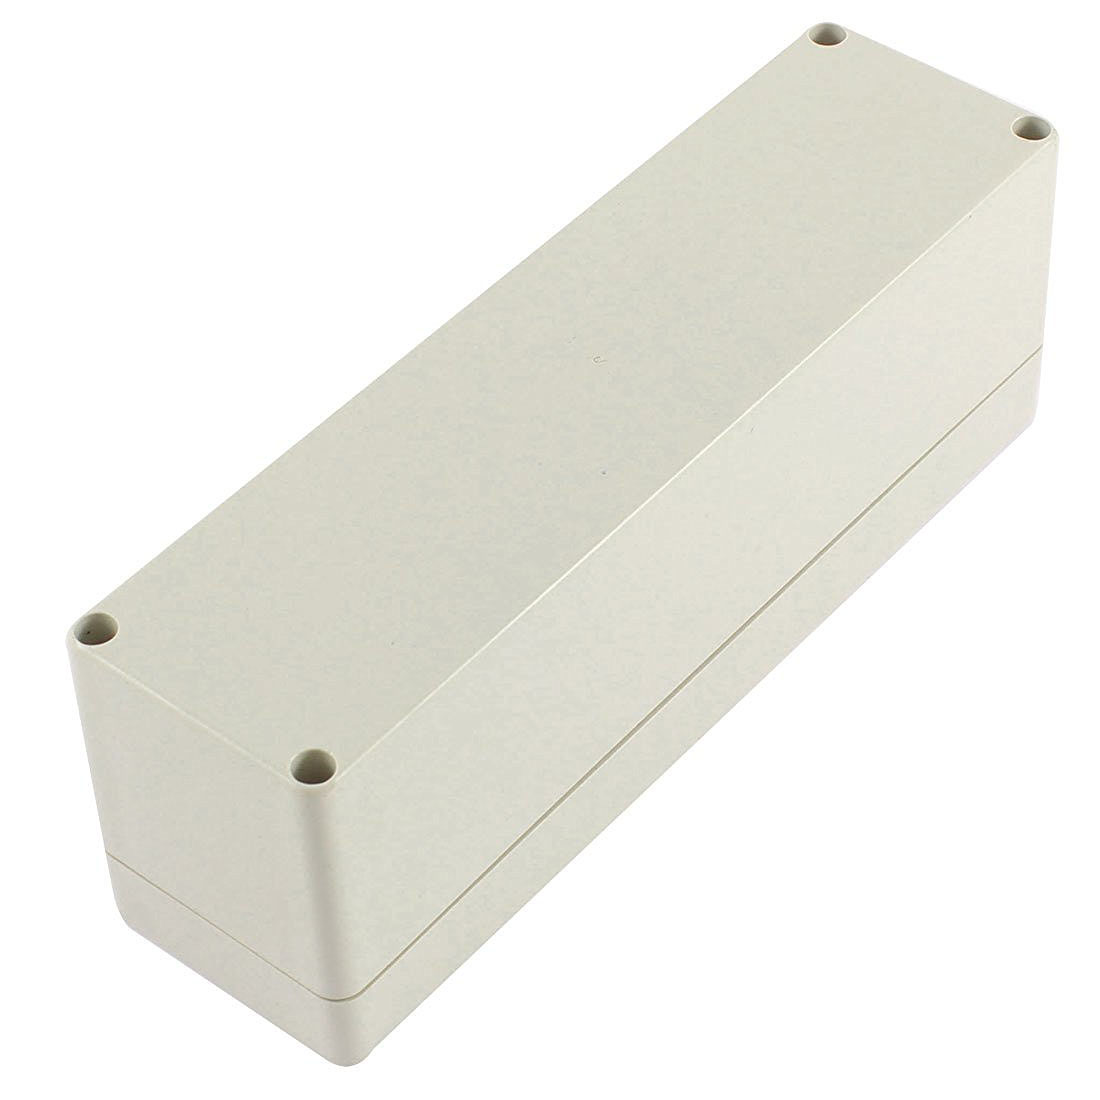 electronic project box Our affordable, durable molded plastic project boxes are made from high-impact abs plastic and feature tongue-in-groove construction for a perfect fit bulk pricing.